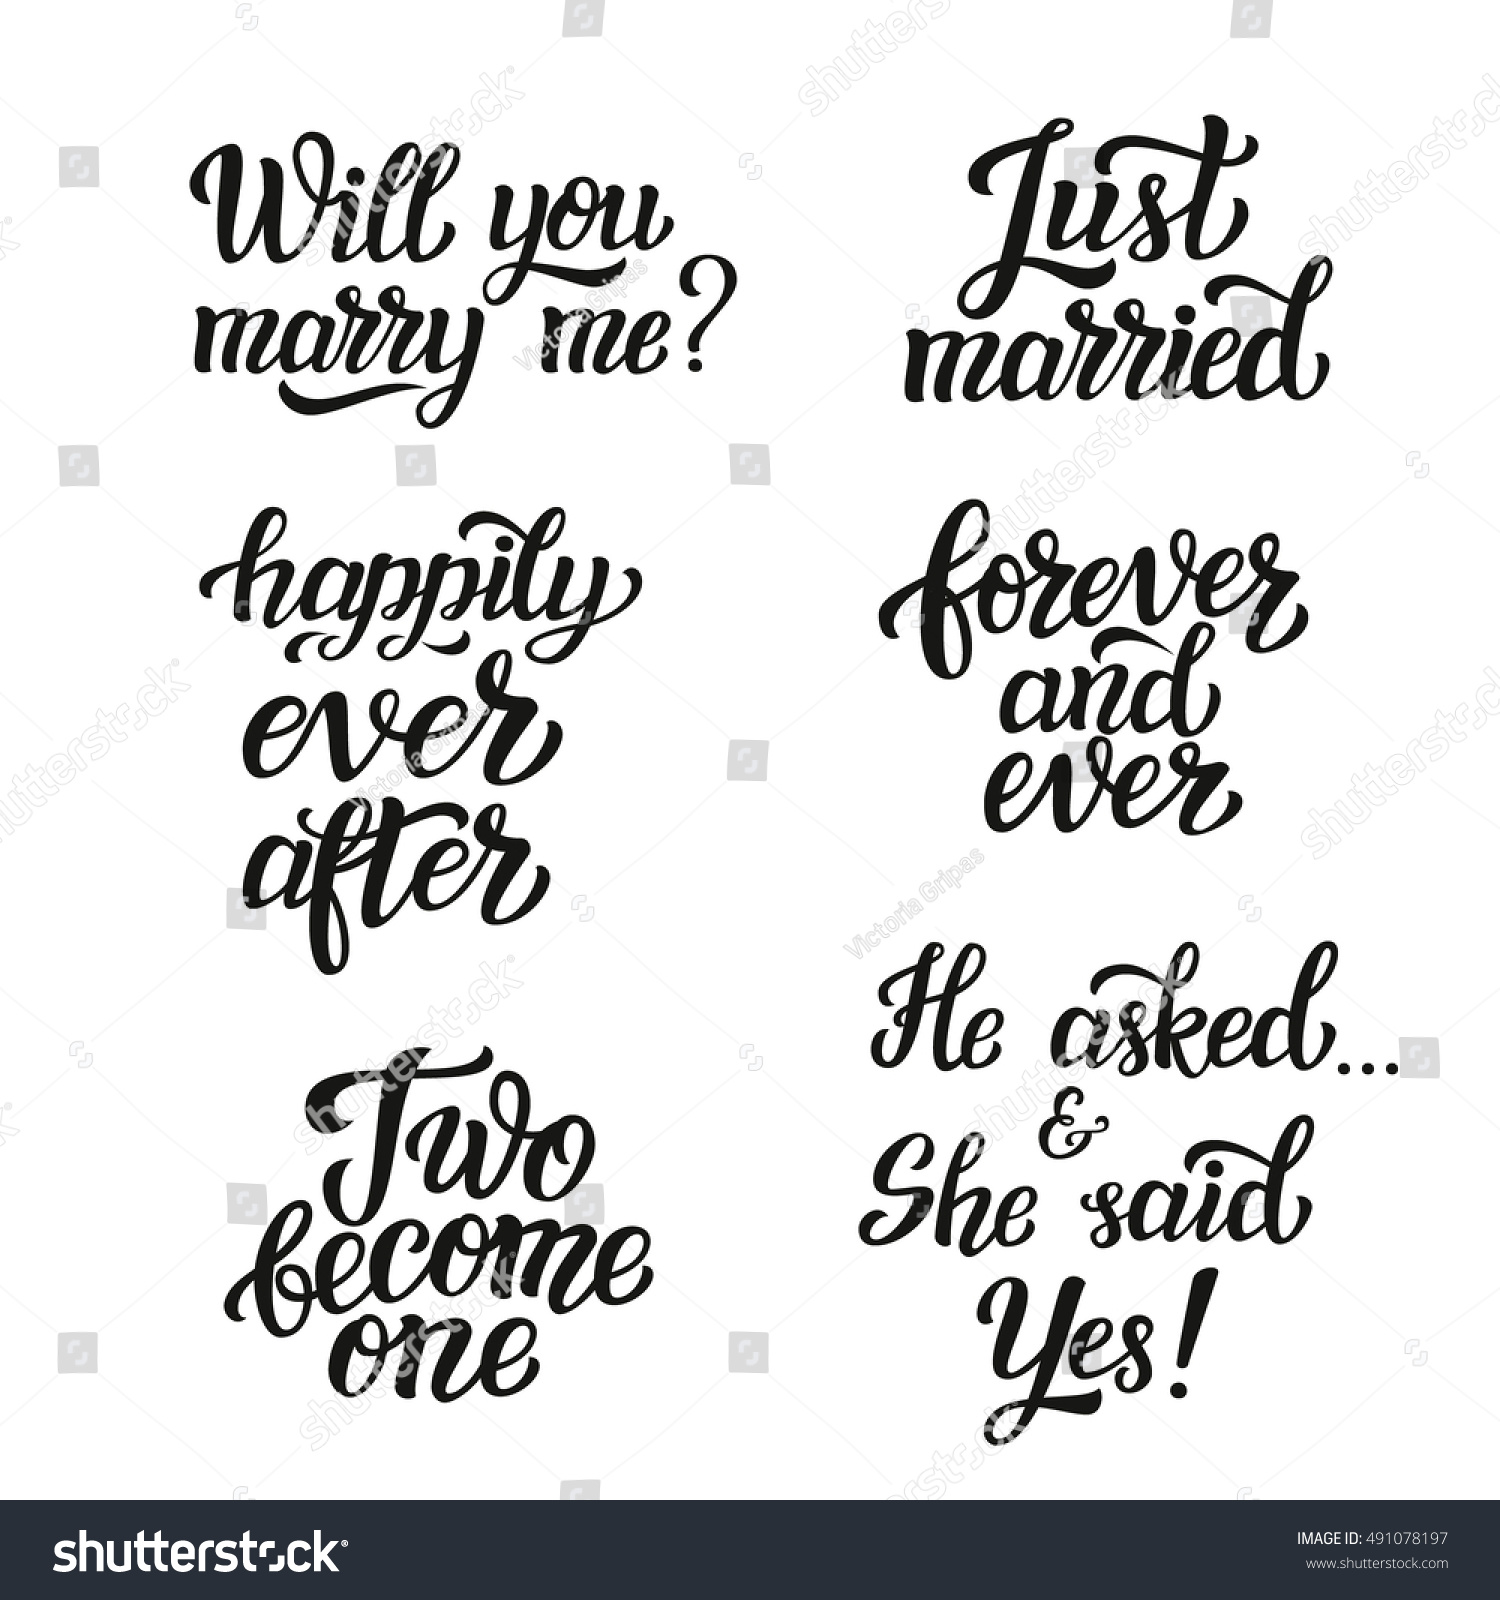 Just Married Quotes Hand Lettering Typography Wedding Set Romantic Stock Illustration